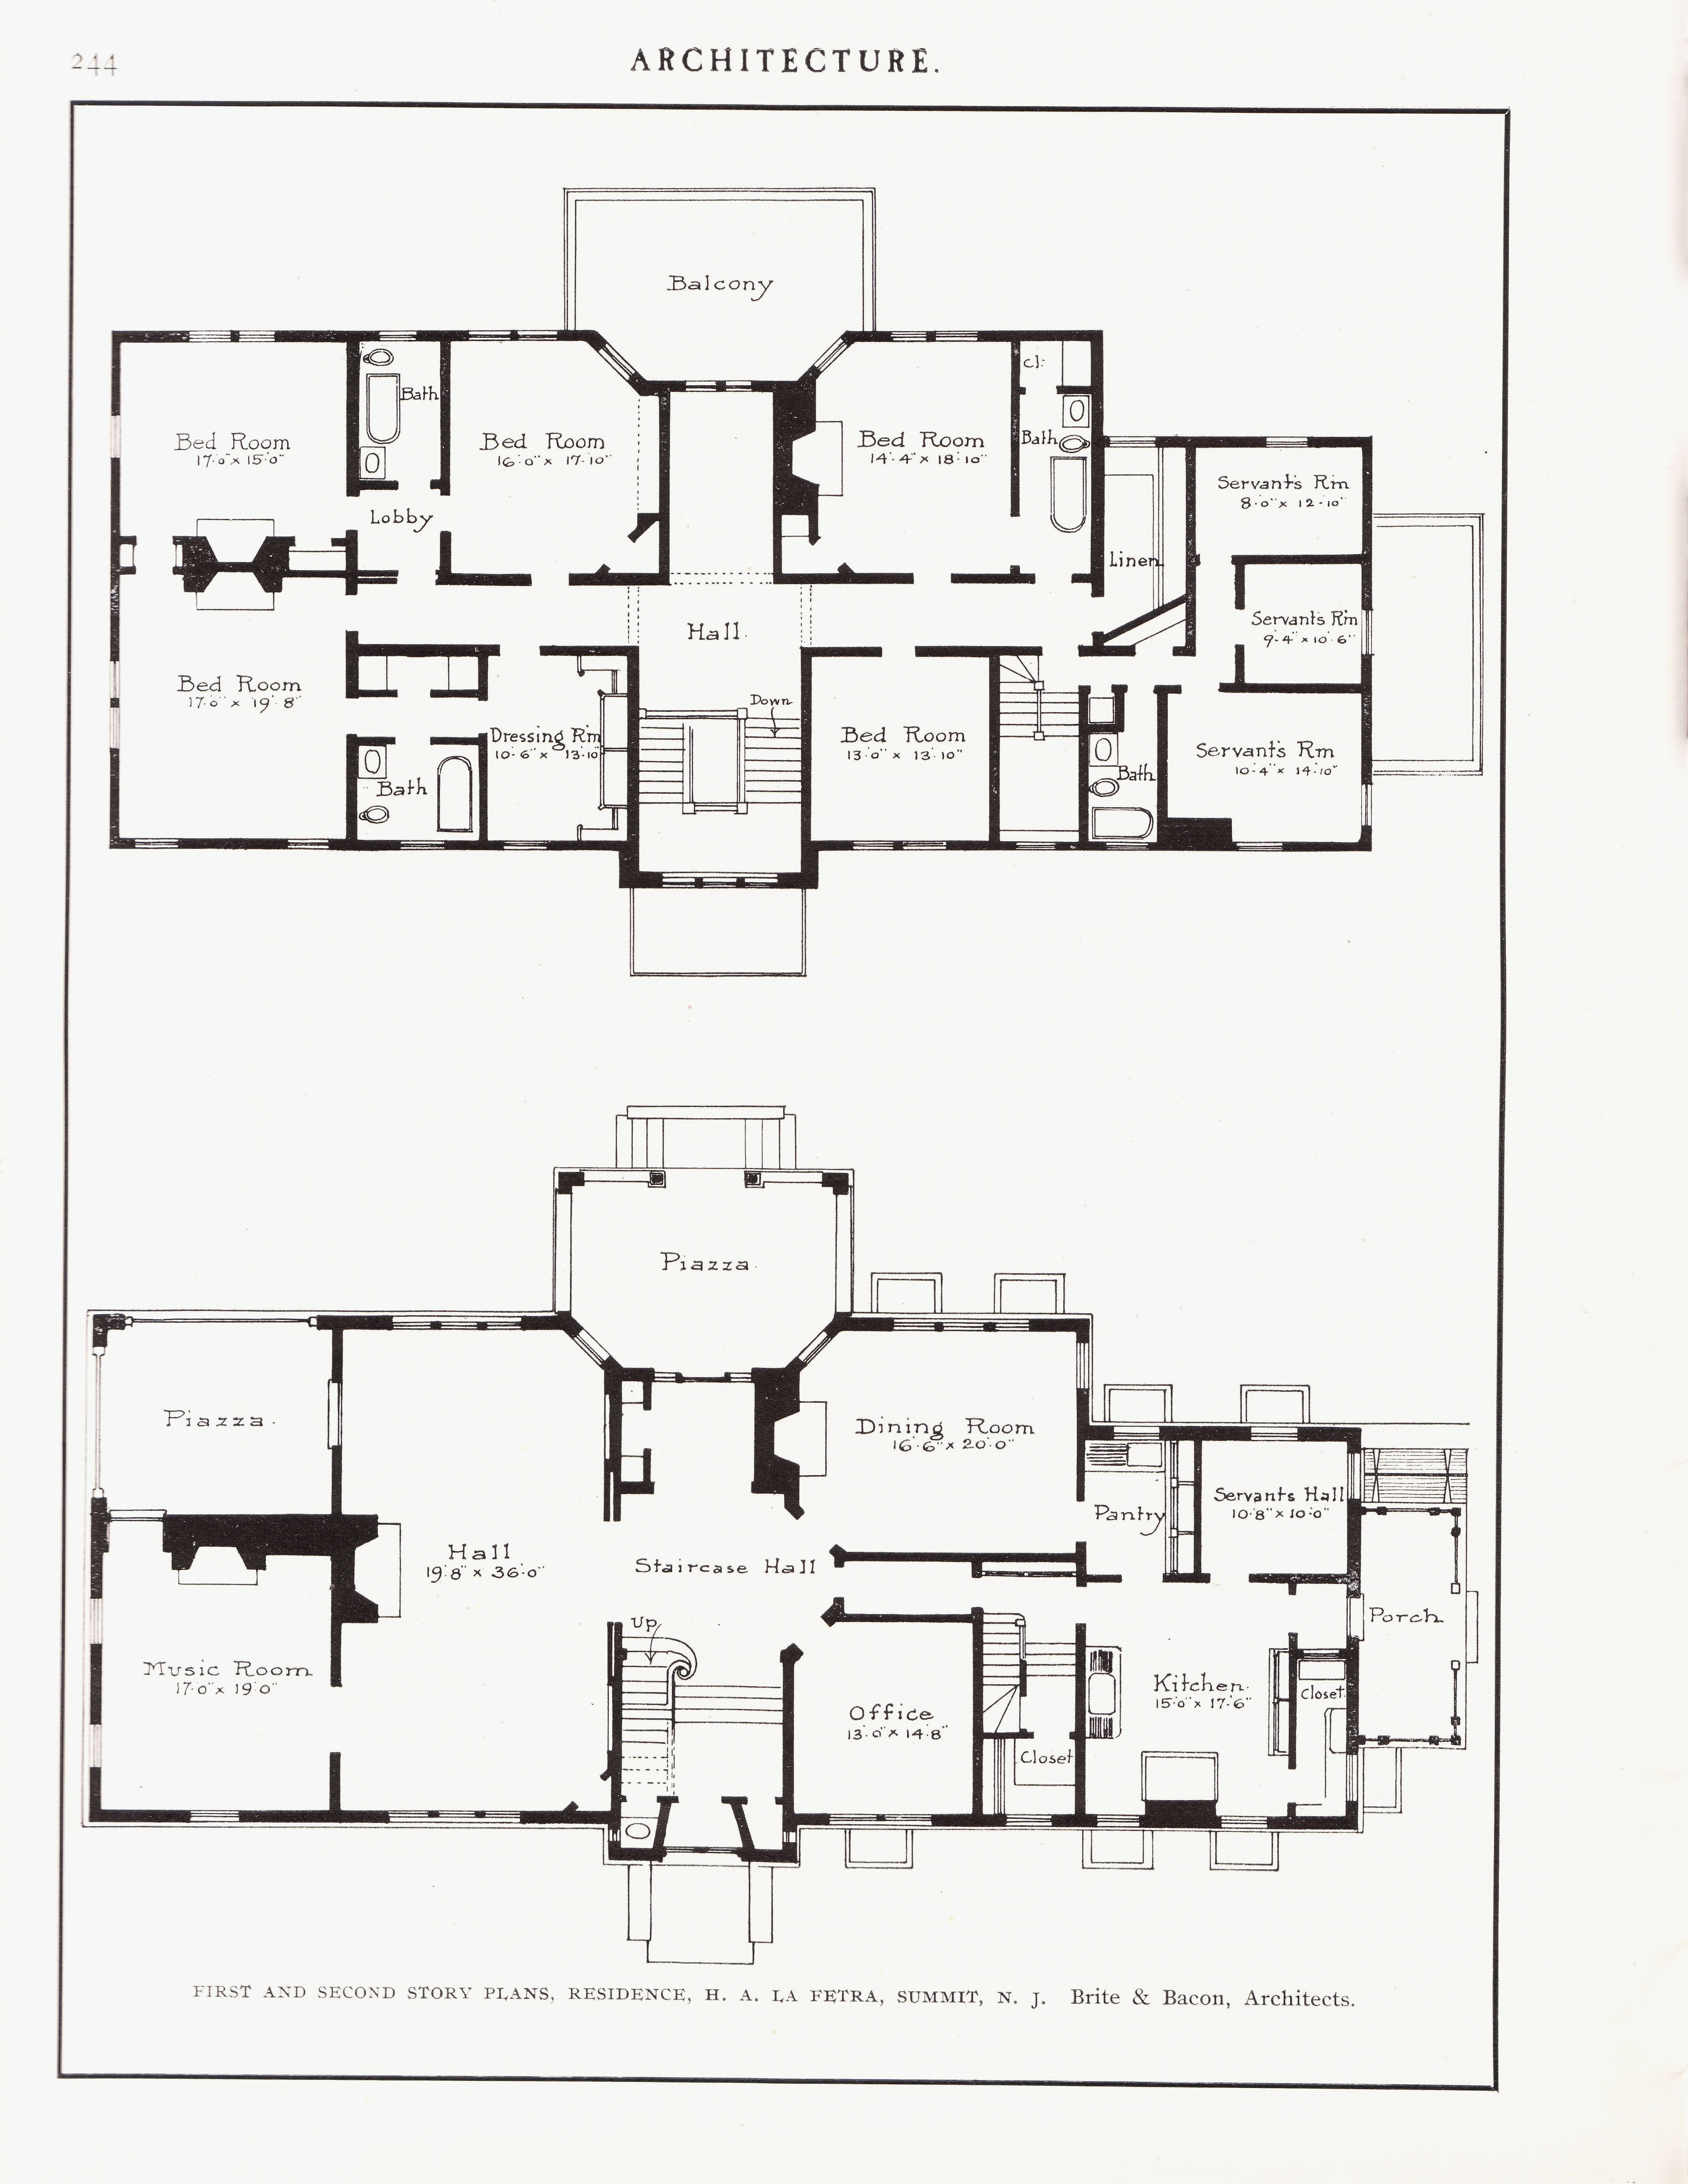 house plan drawing software free new 3 bhk luxurious apartment autocad house plan drawing autocad dwg